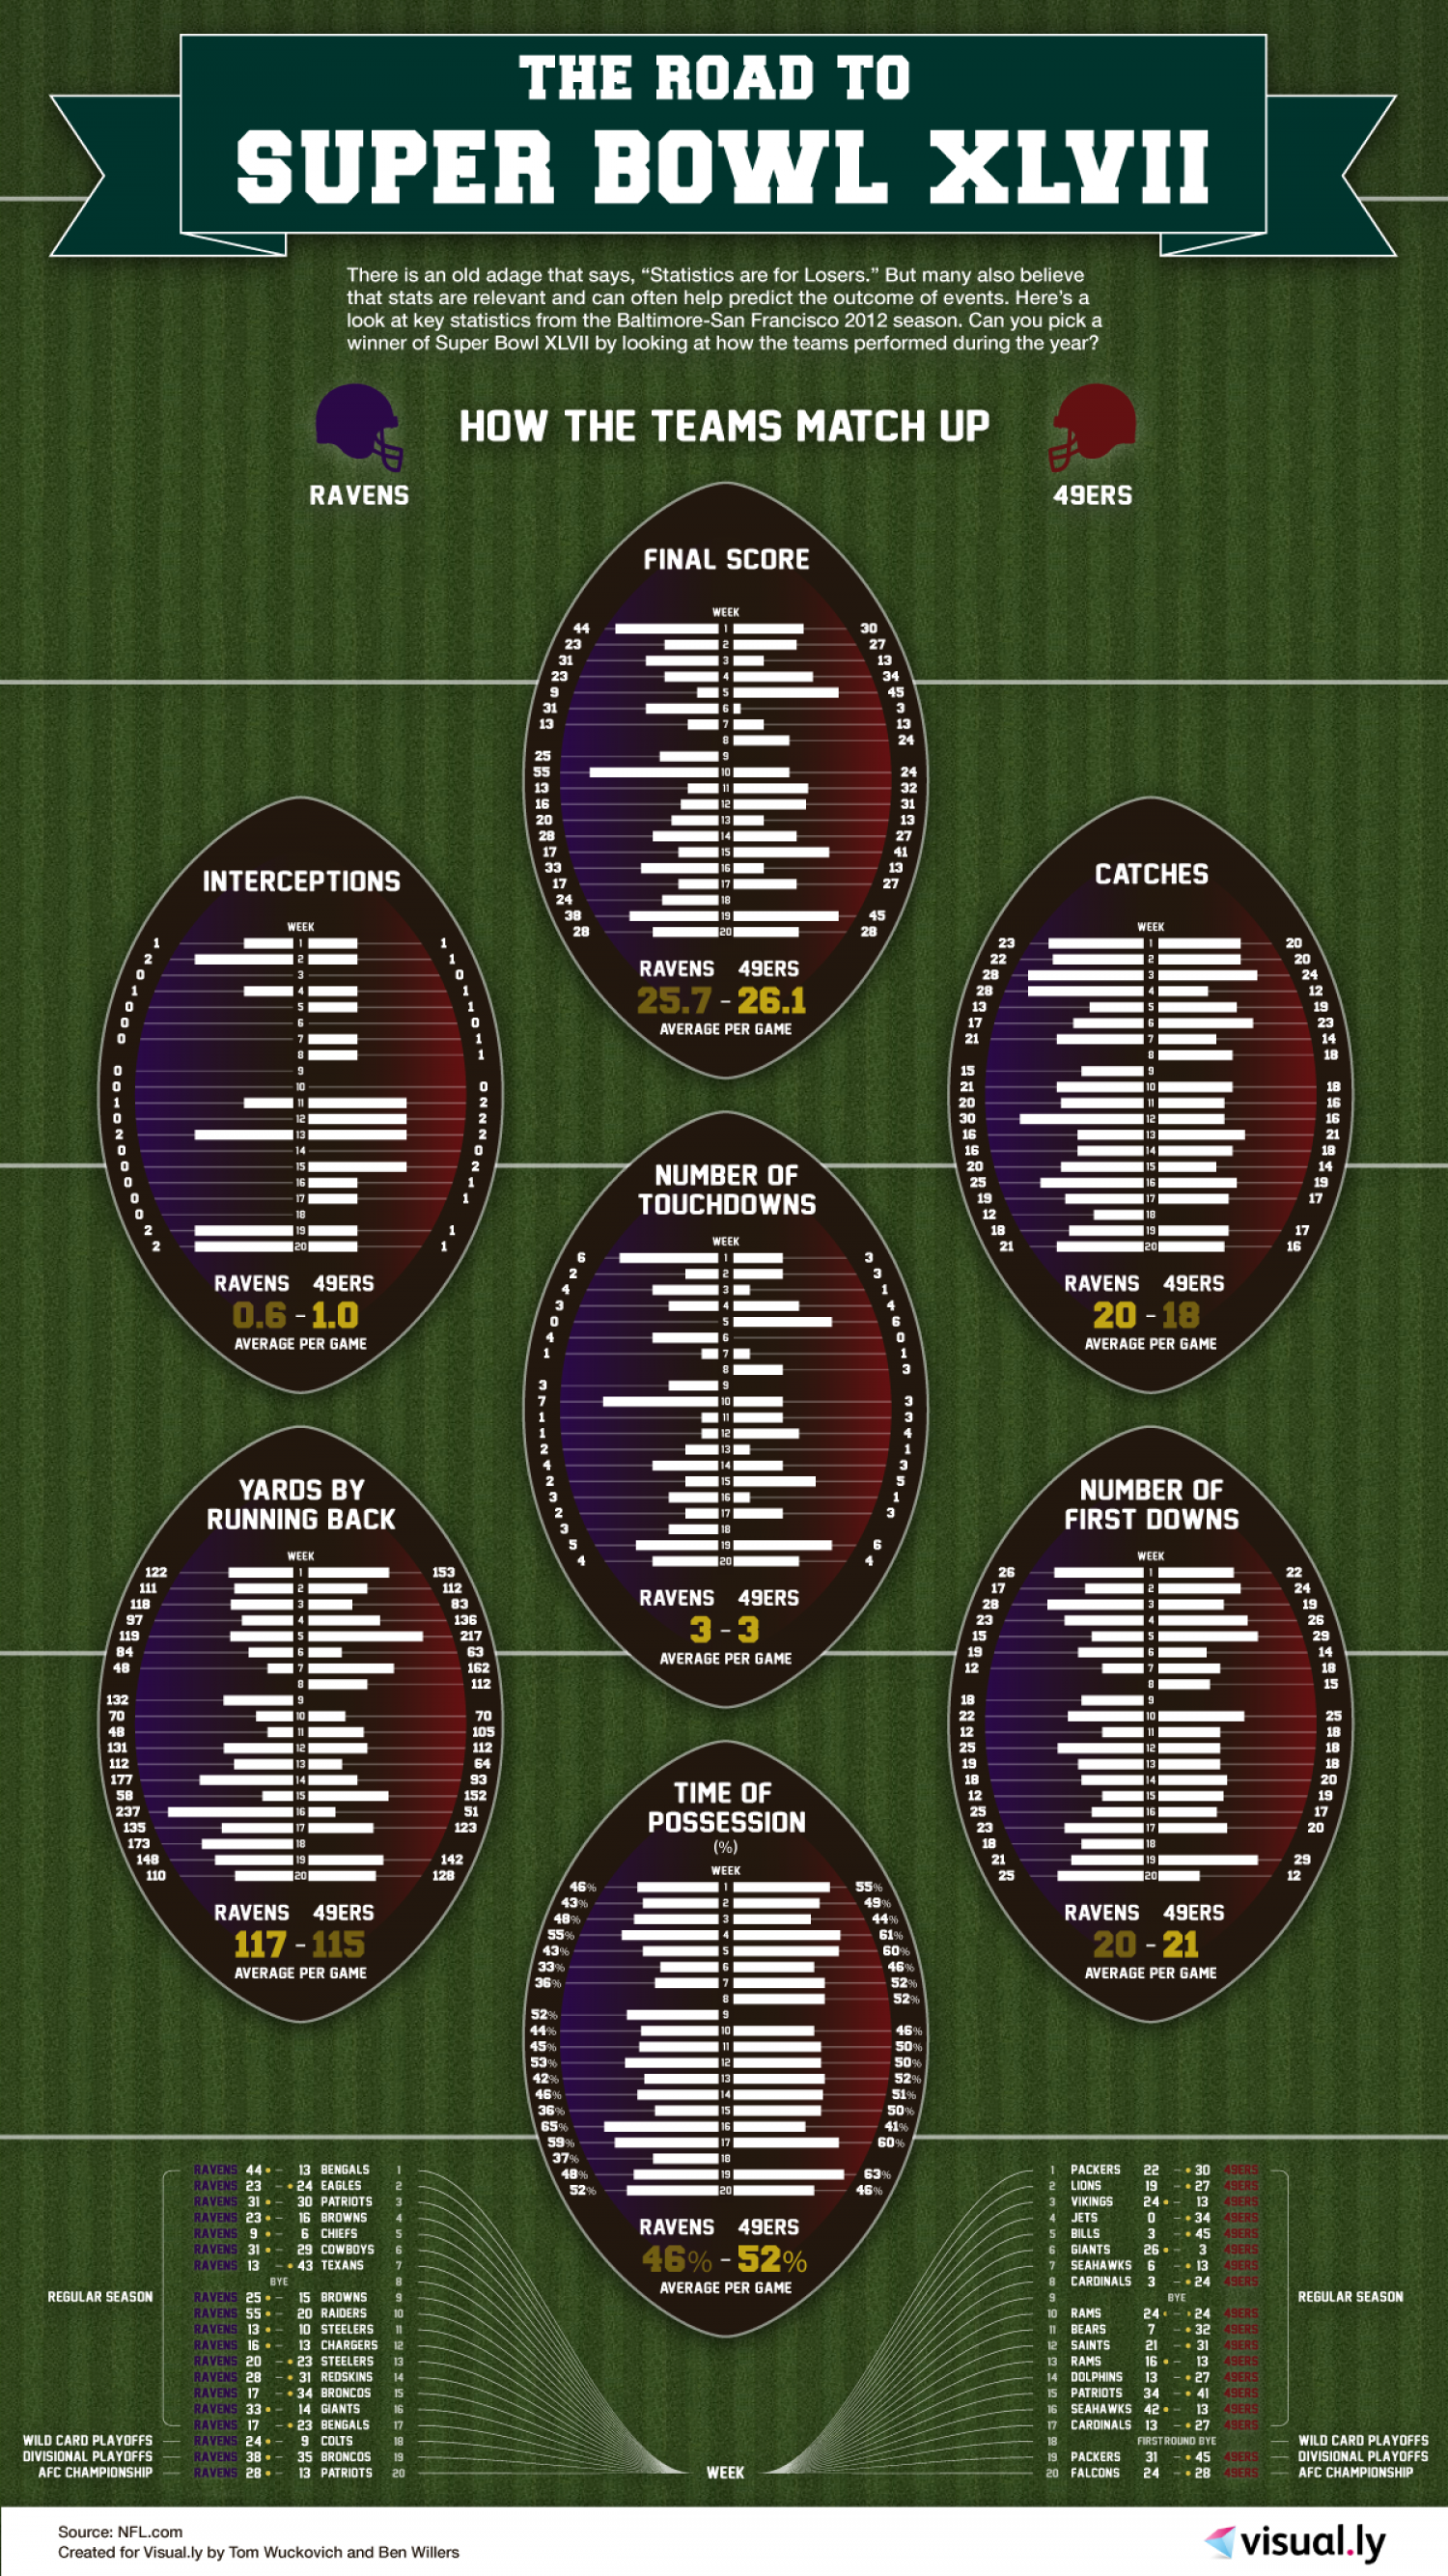 The Road to Super Bowl XLVII Infographic